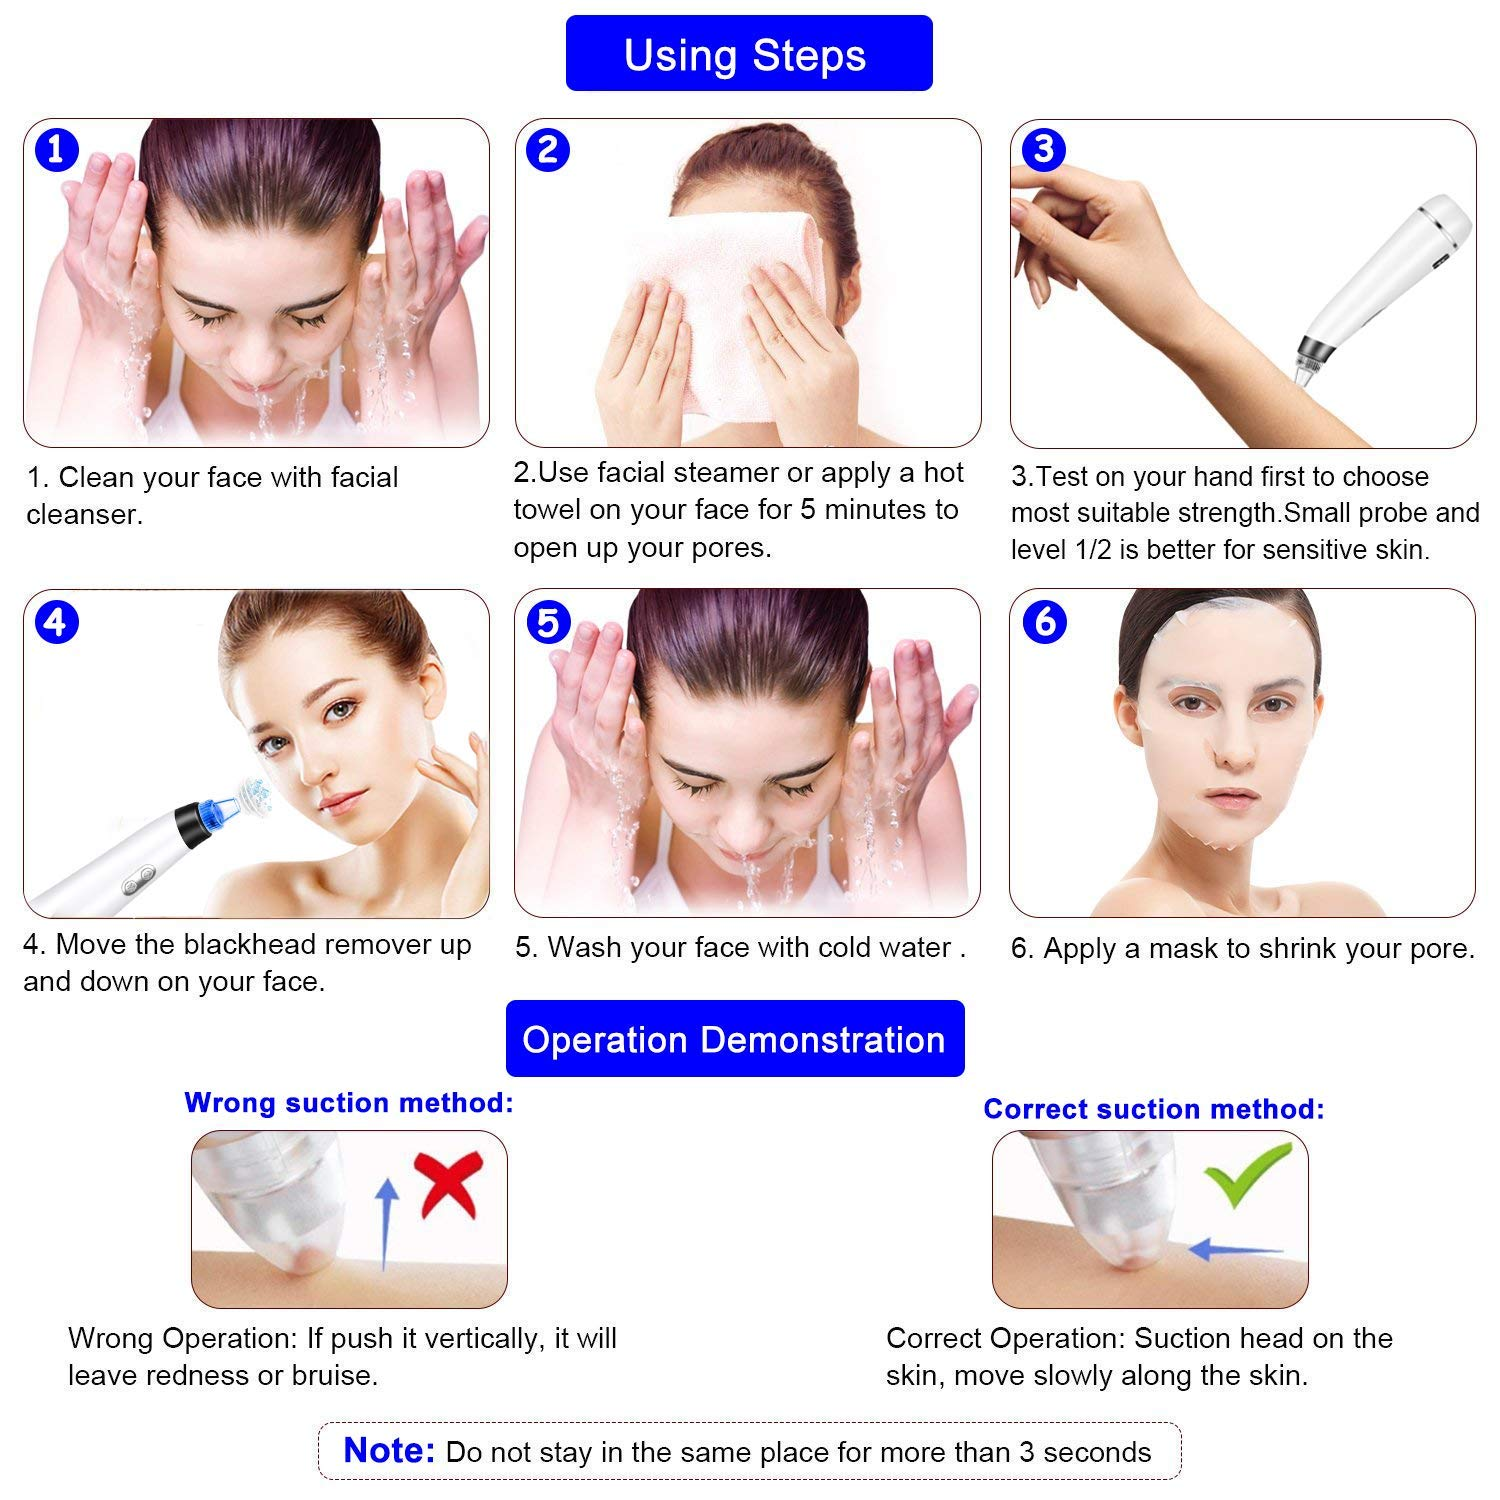 ZCPlus Blackhead Remover Skin Facial Vacuum Pore Cleaner Acne Comedone Extractor USB Rechargeable Pore Sucker Acne Extractor Tool for Beauty Travel Business Trip Gift Man and Women